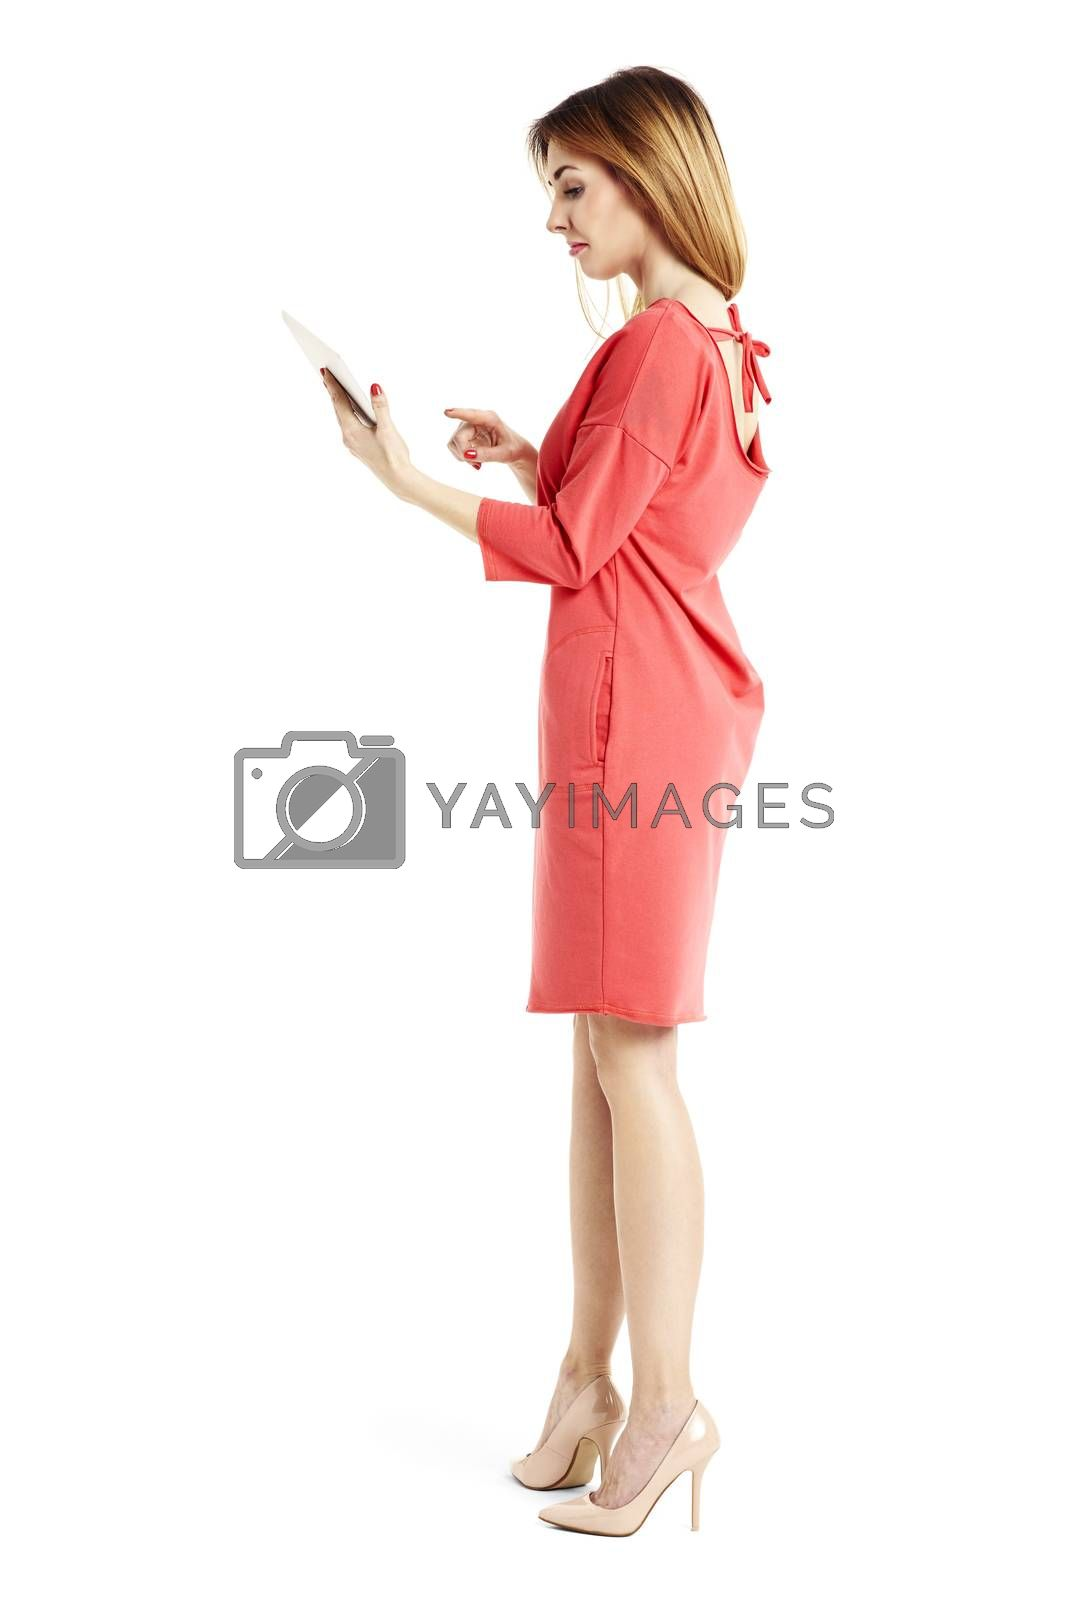 Studio shot of young attractive woman is reading from digital tablet.